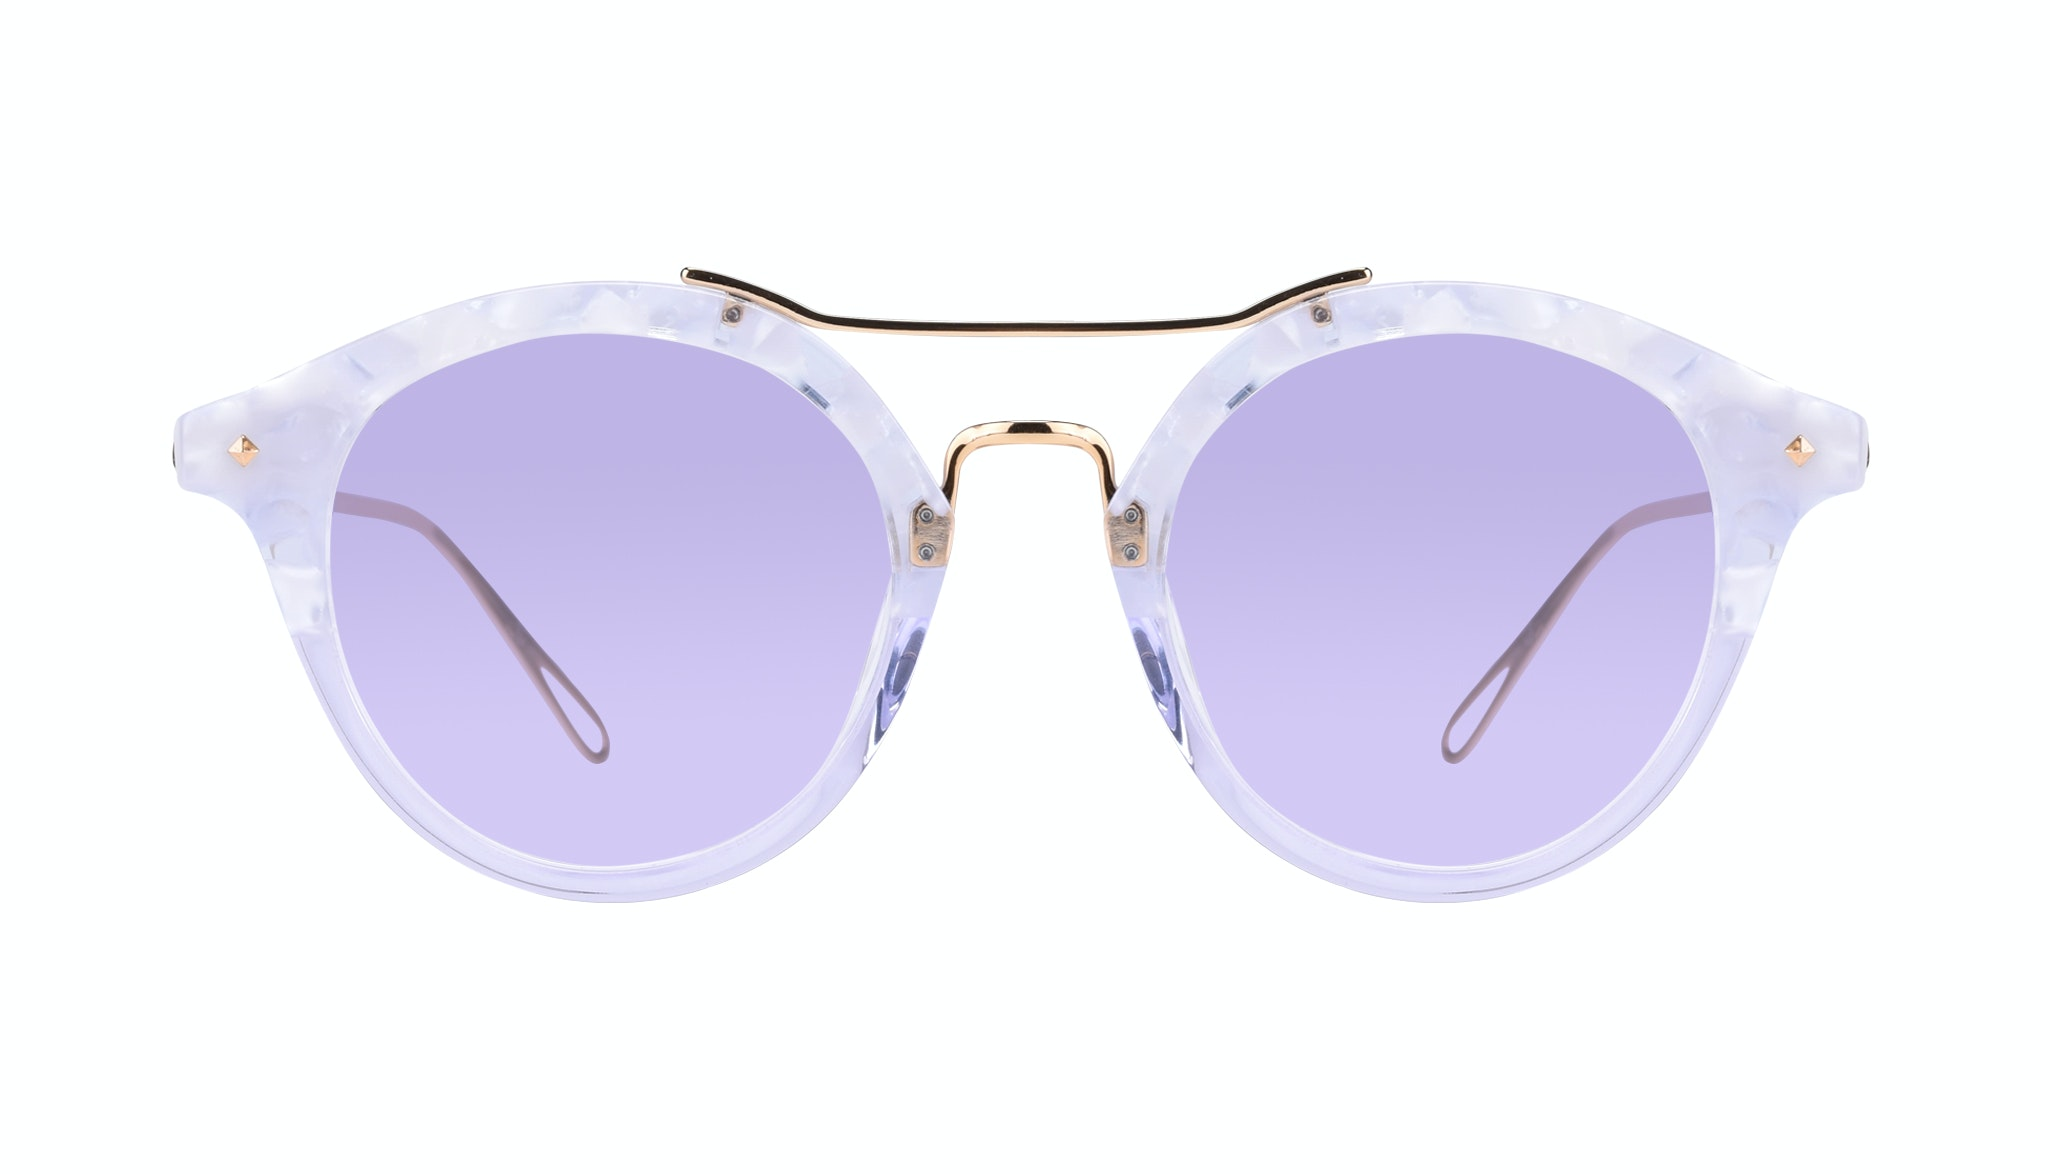 Affordable Fashion Glasses Round Sunglasses Women Infinite Moonlight Front